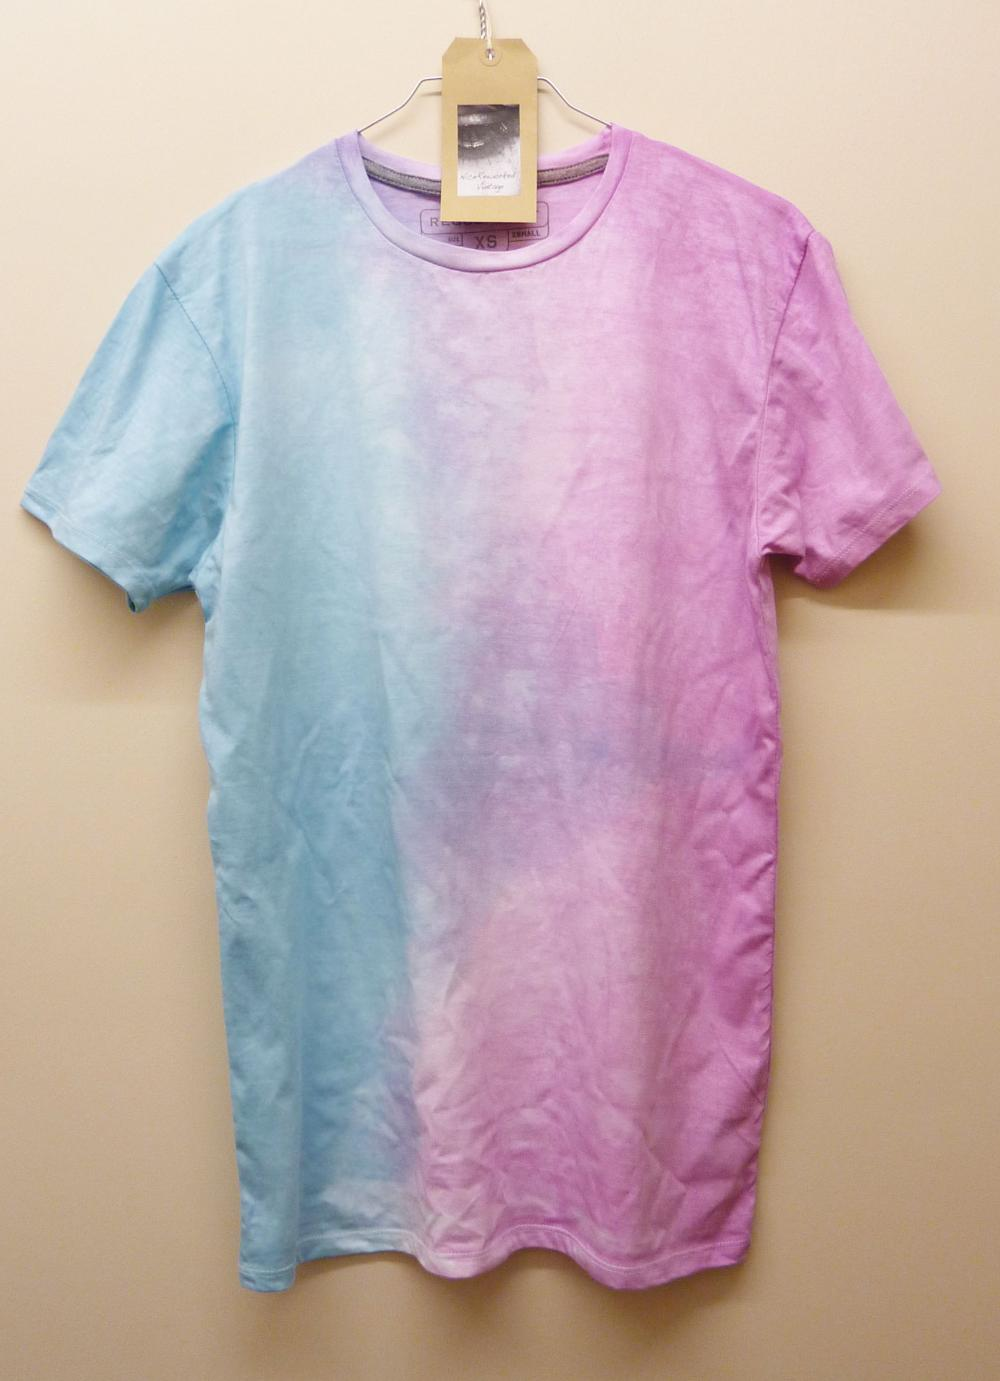 Dip Tye Dyed T Shirt Pastel colours Pink and Blue Reworked Vintage Summer